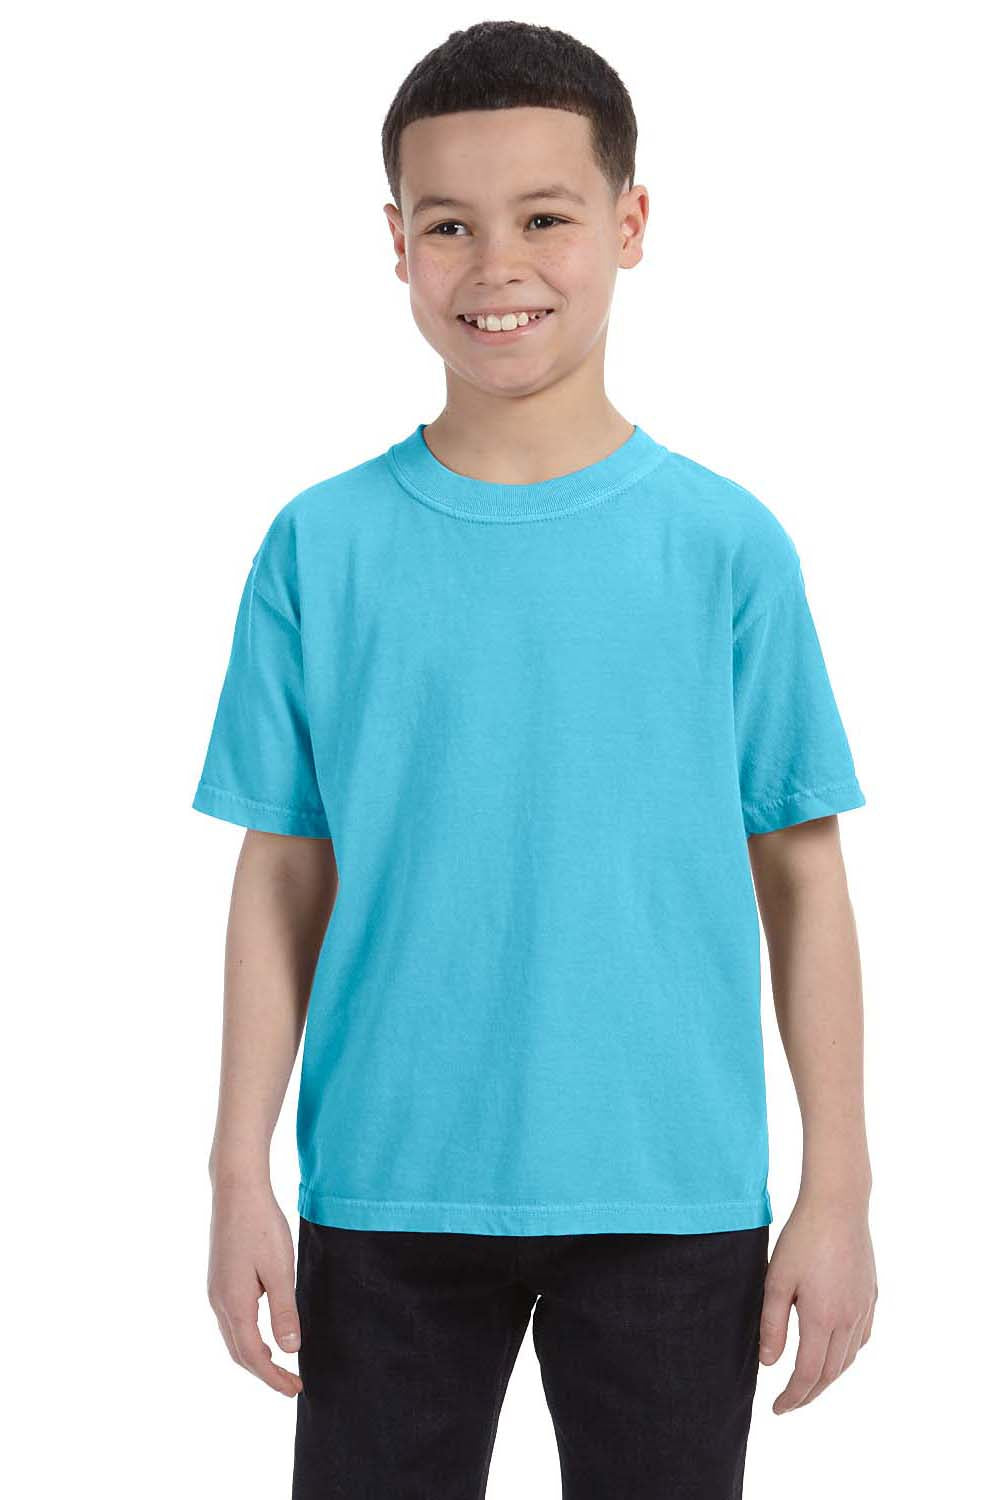 Comfort Colors C9018 Youth Short Sleeve Crewneck T-Shirt Lagoon Blue Front